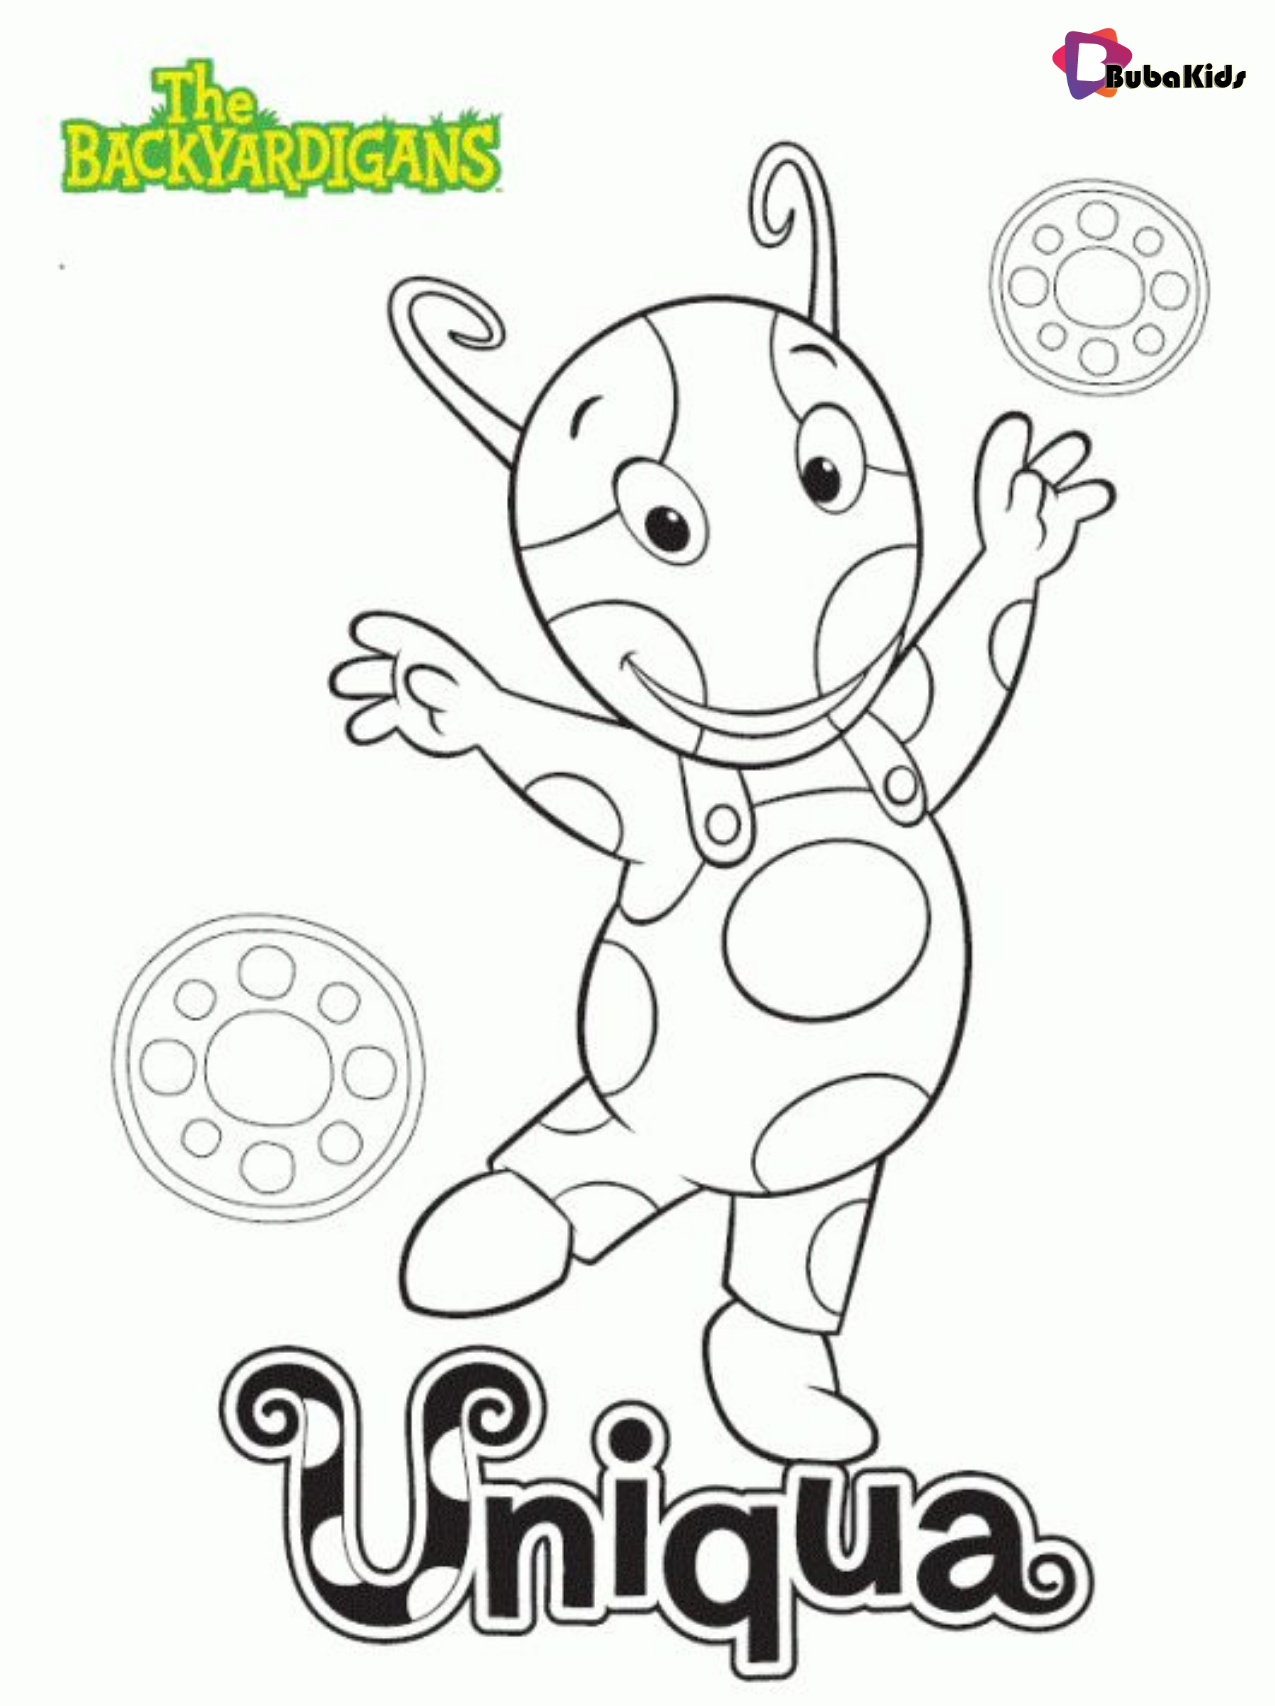 Backyardigans Coloring Pages | Online coloring pages, Coloring ... | 1706x1275